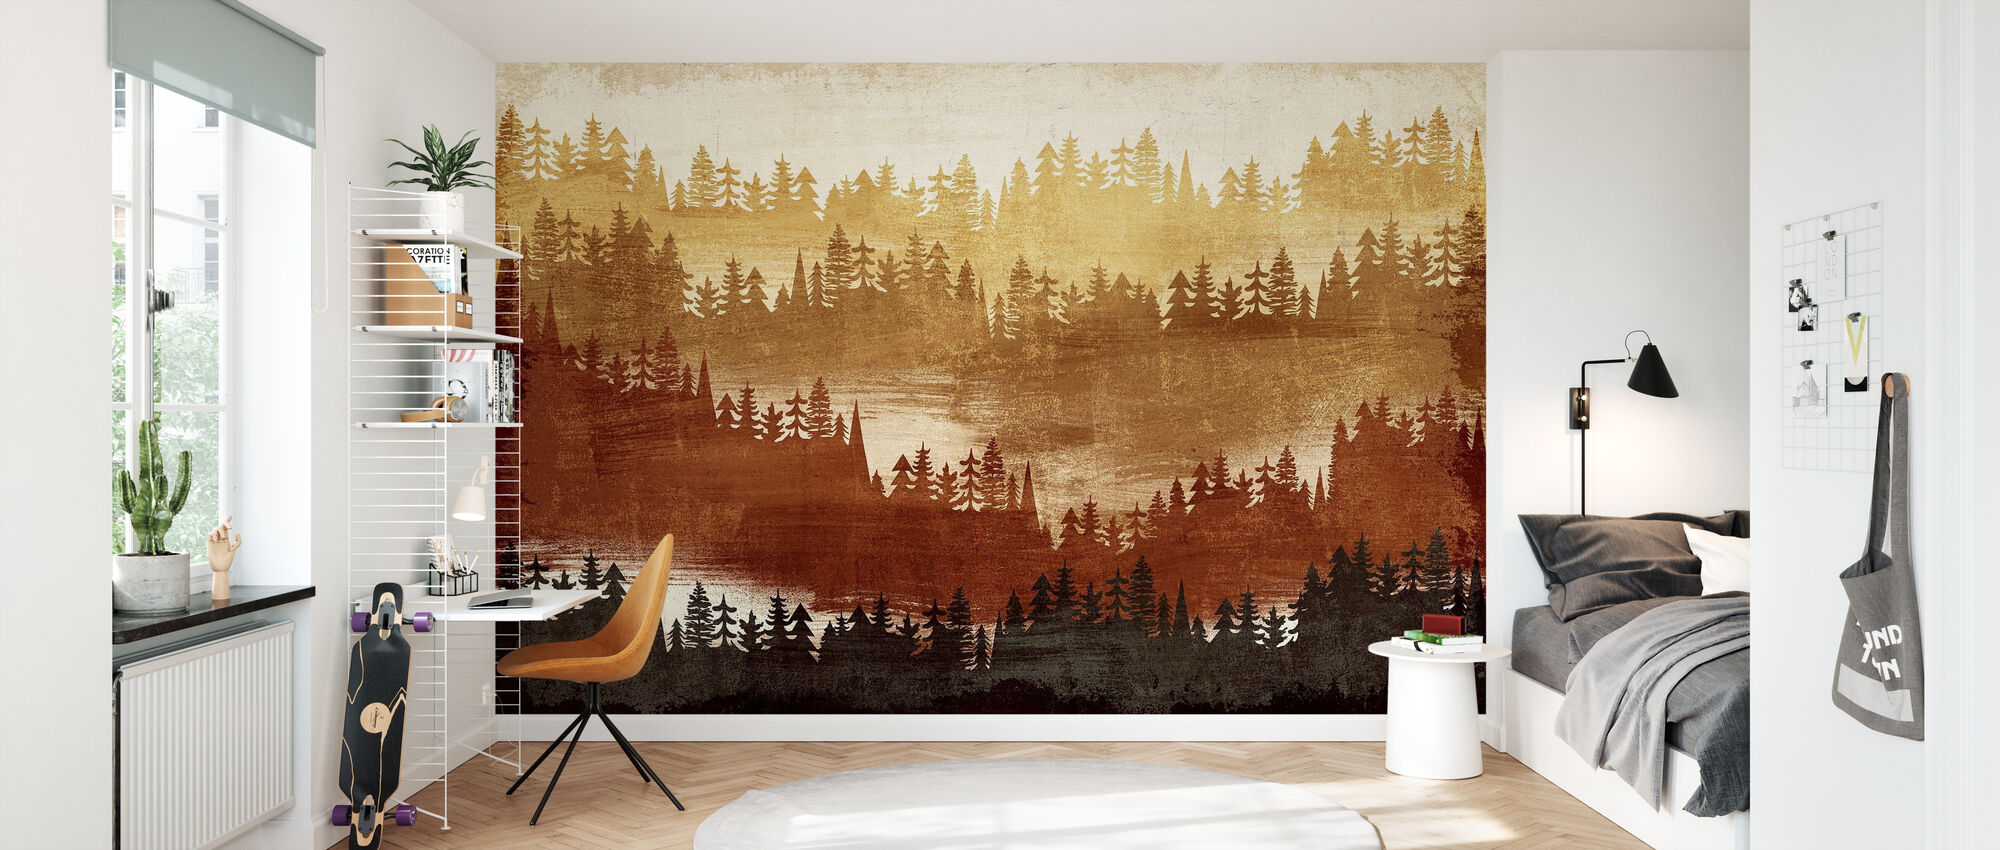 Mountainscape Spice - Wallpaper - Kids Room